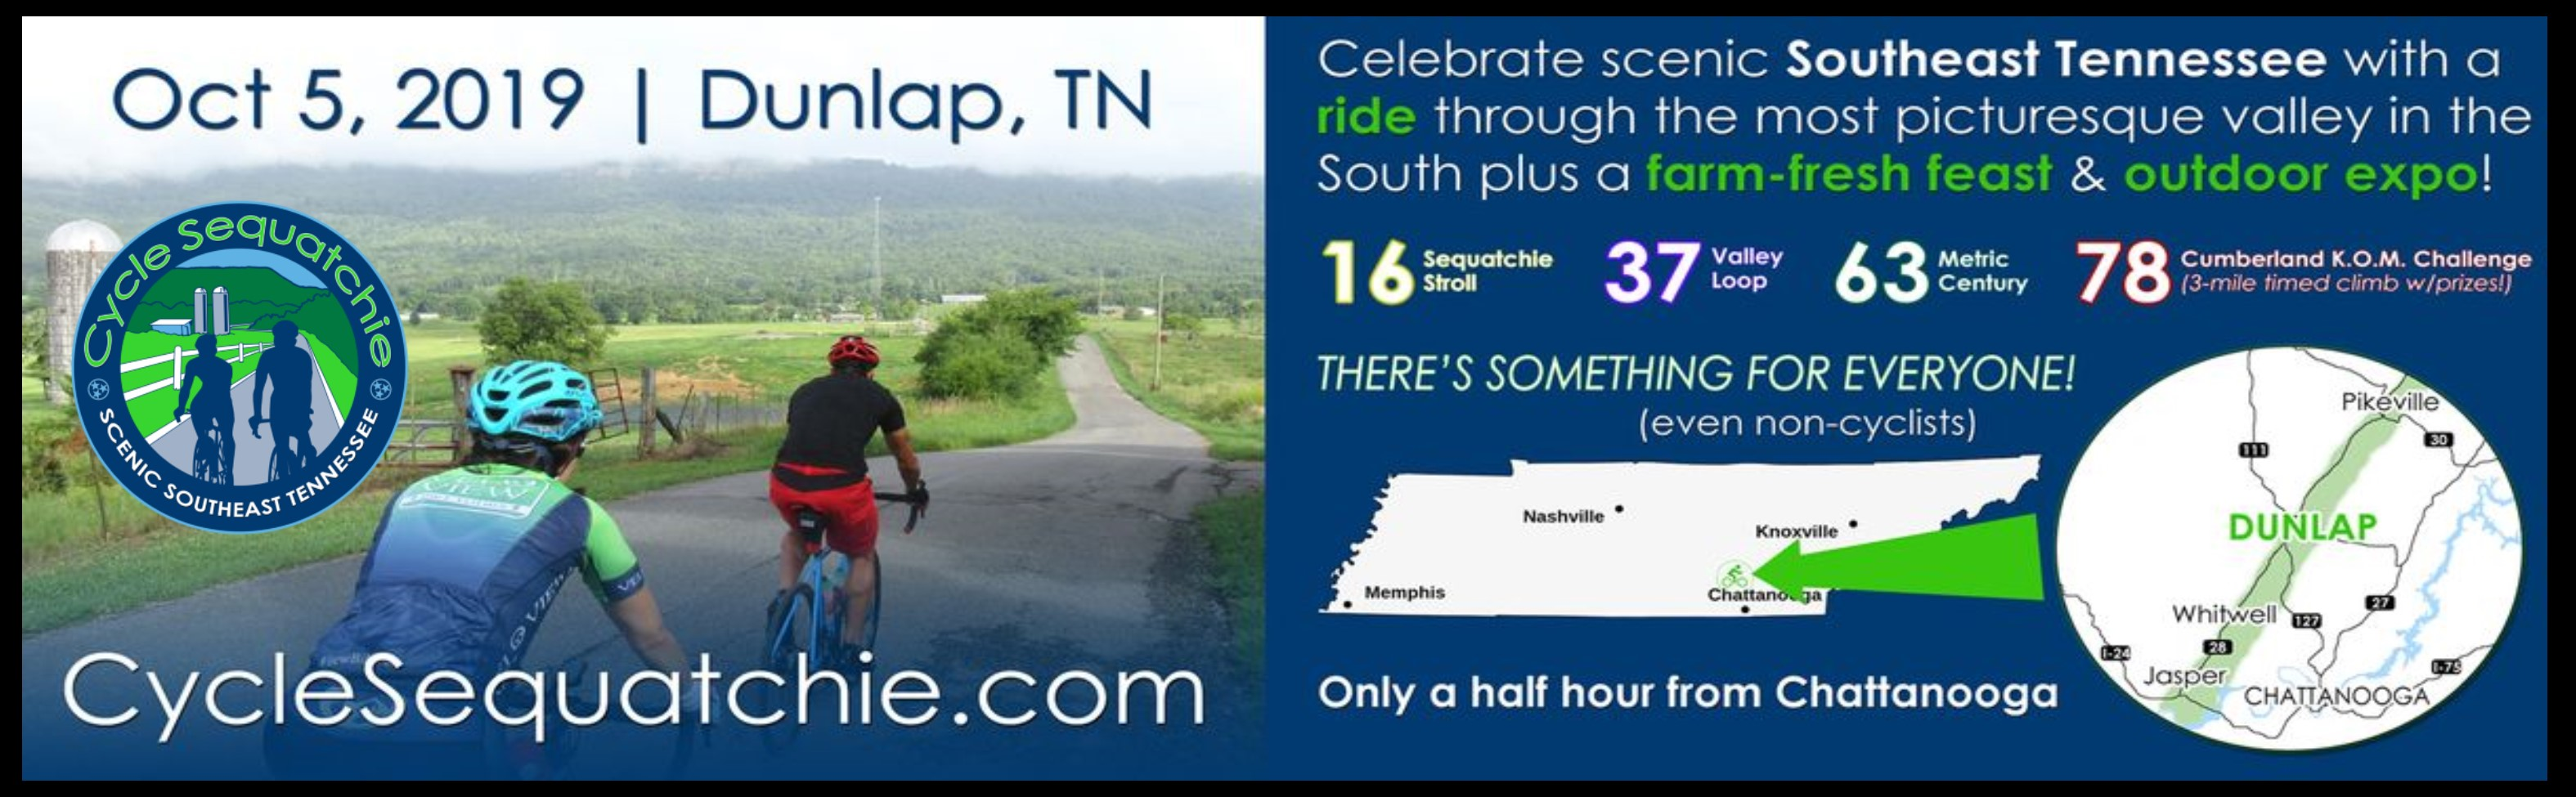 Cycle Sequatchie 3